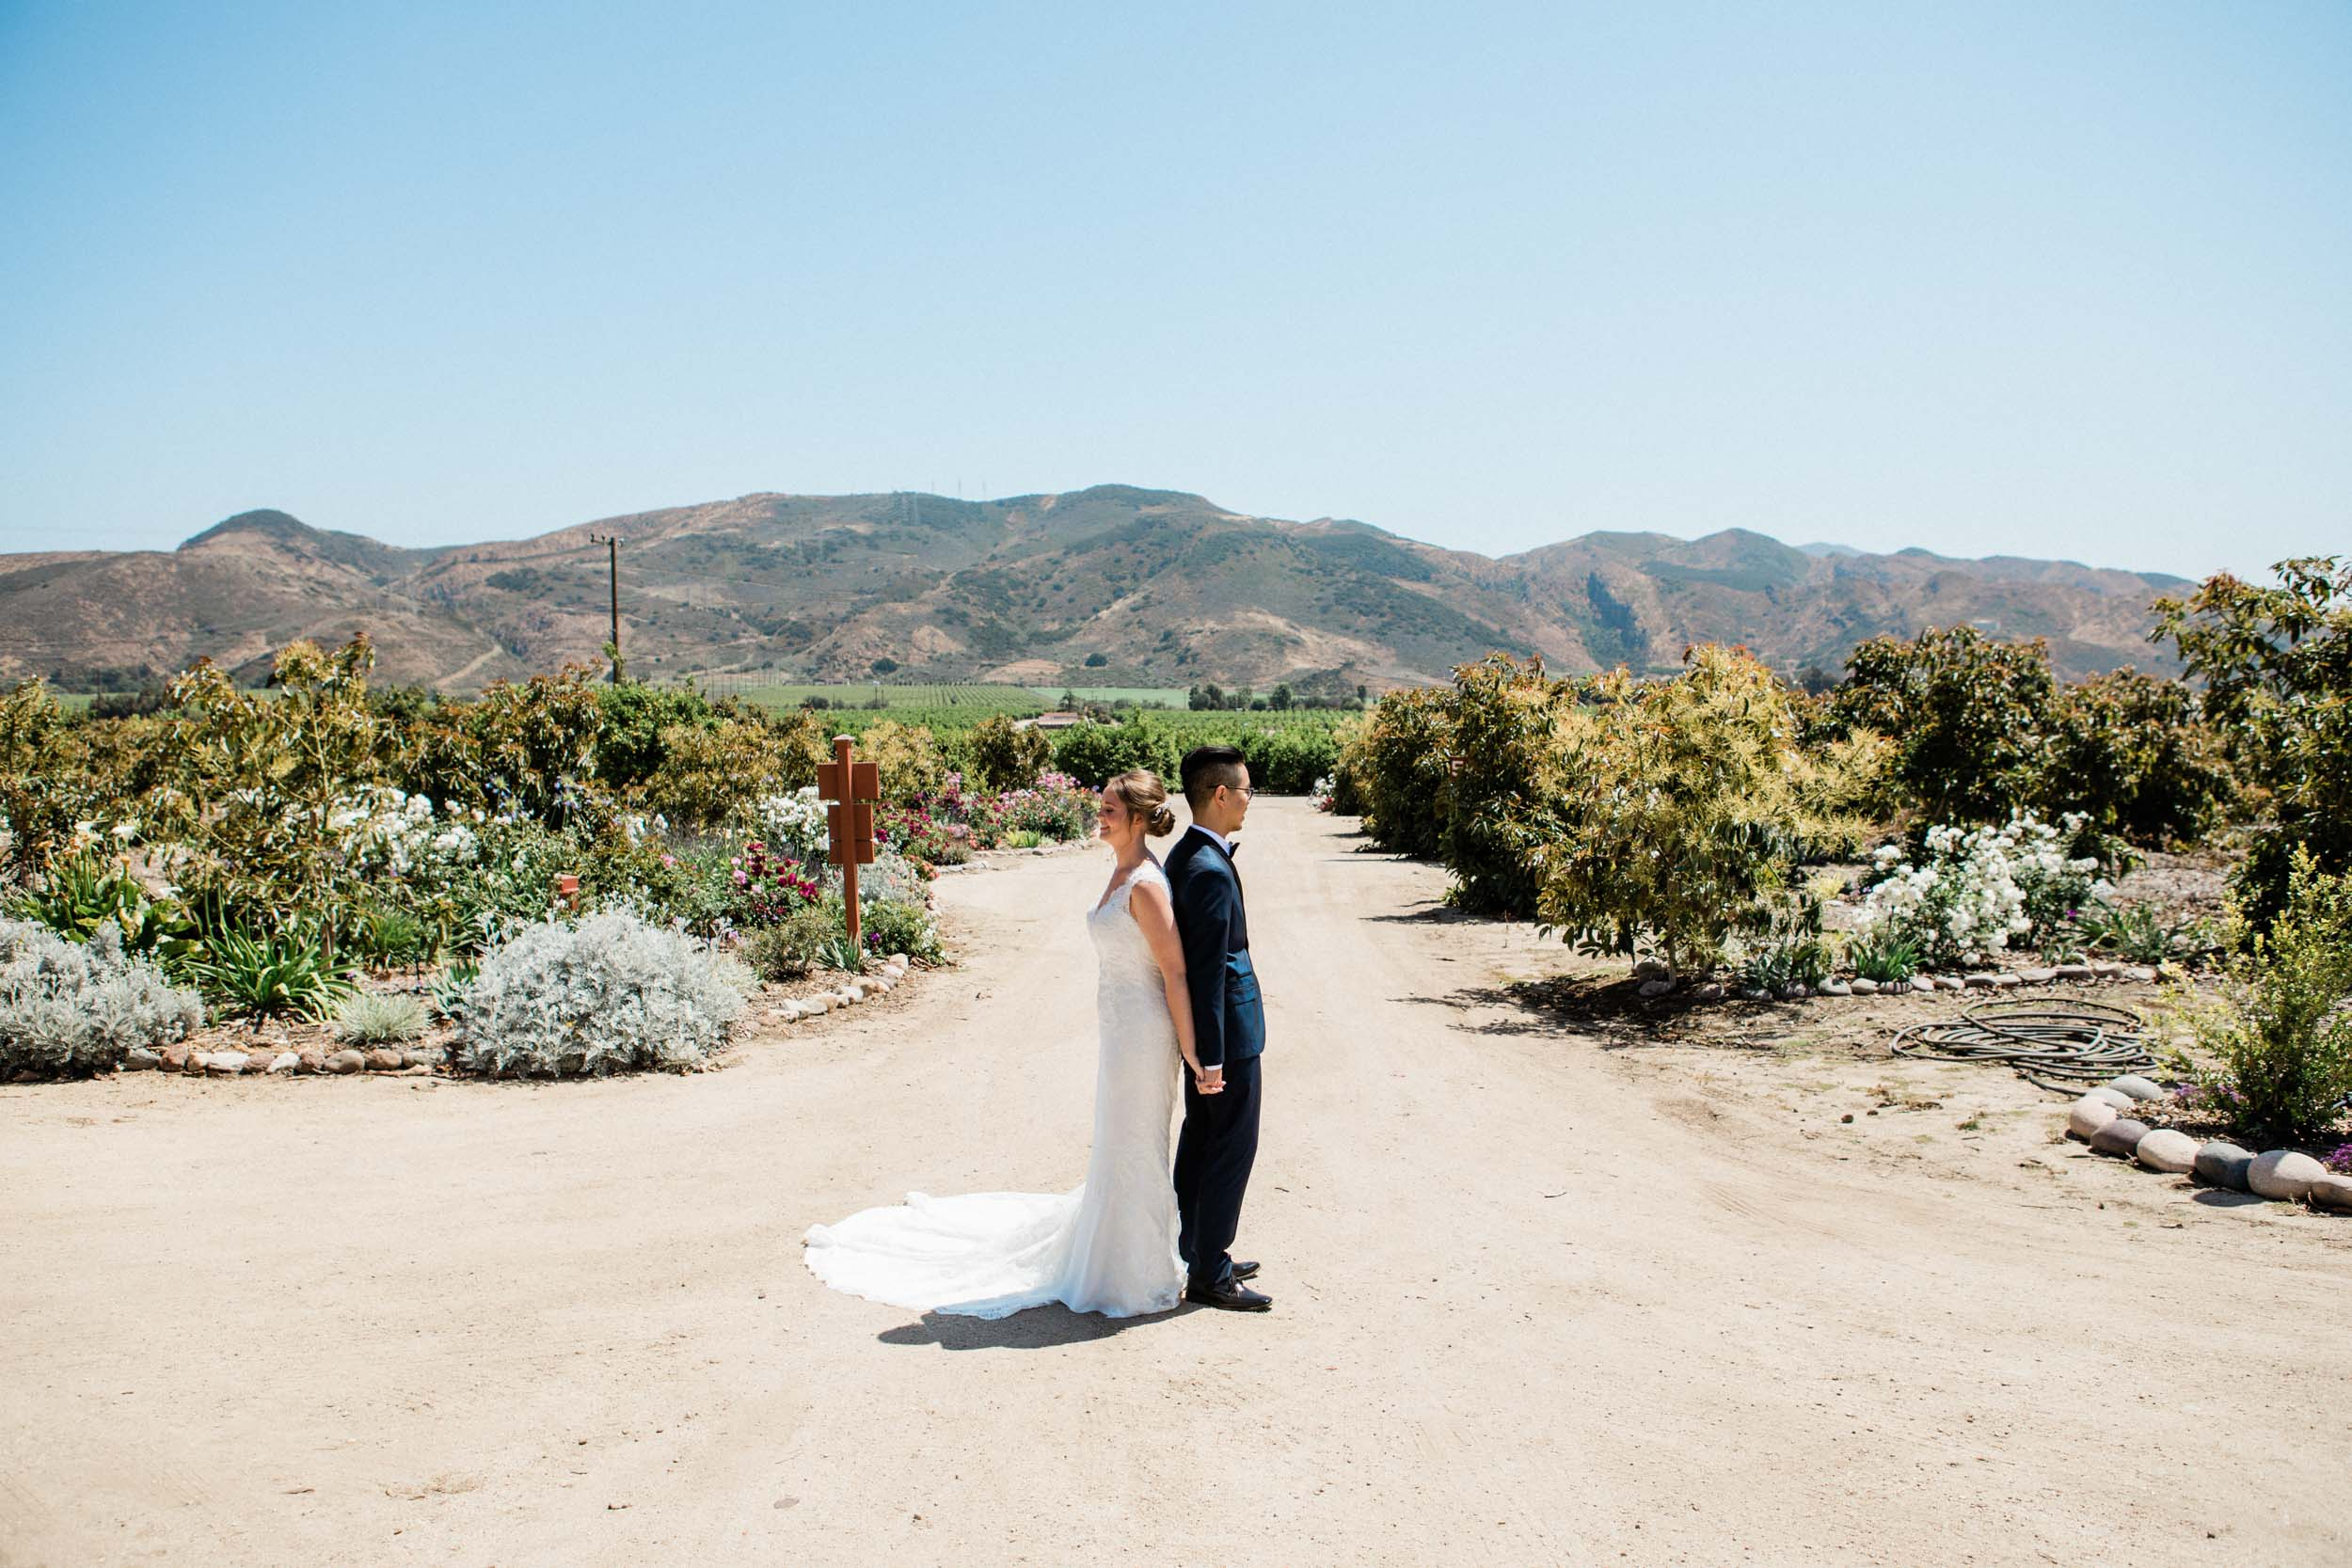 BKM-Photography-Gerry-Ranch-Southern-California-Wedding-0040.jpg